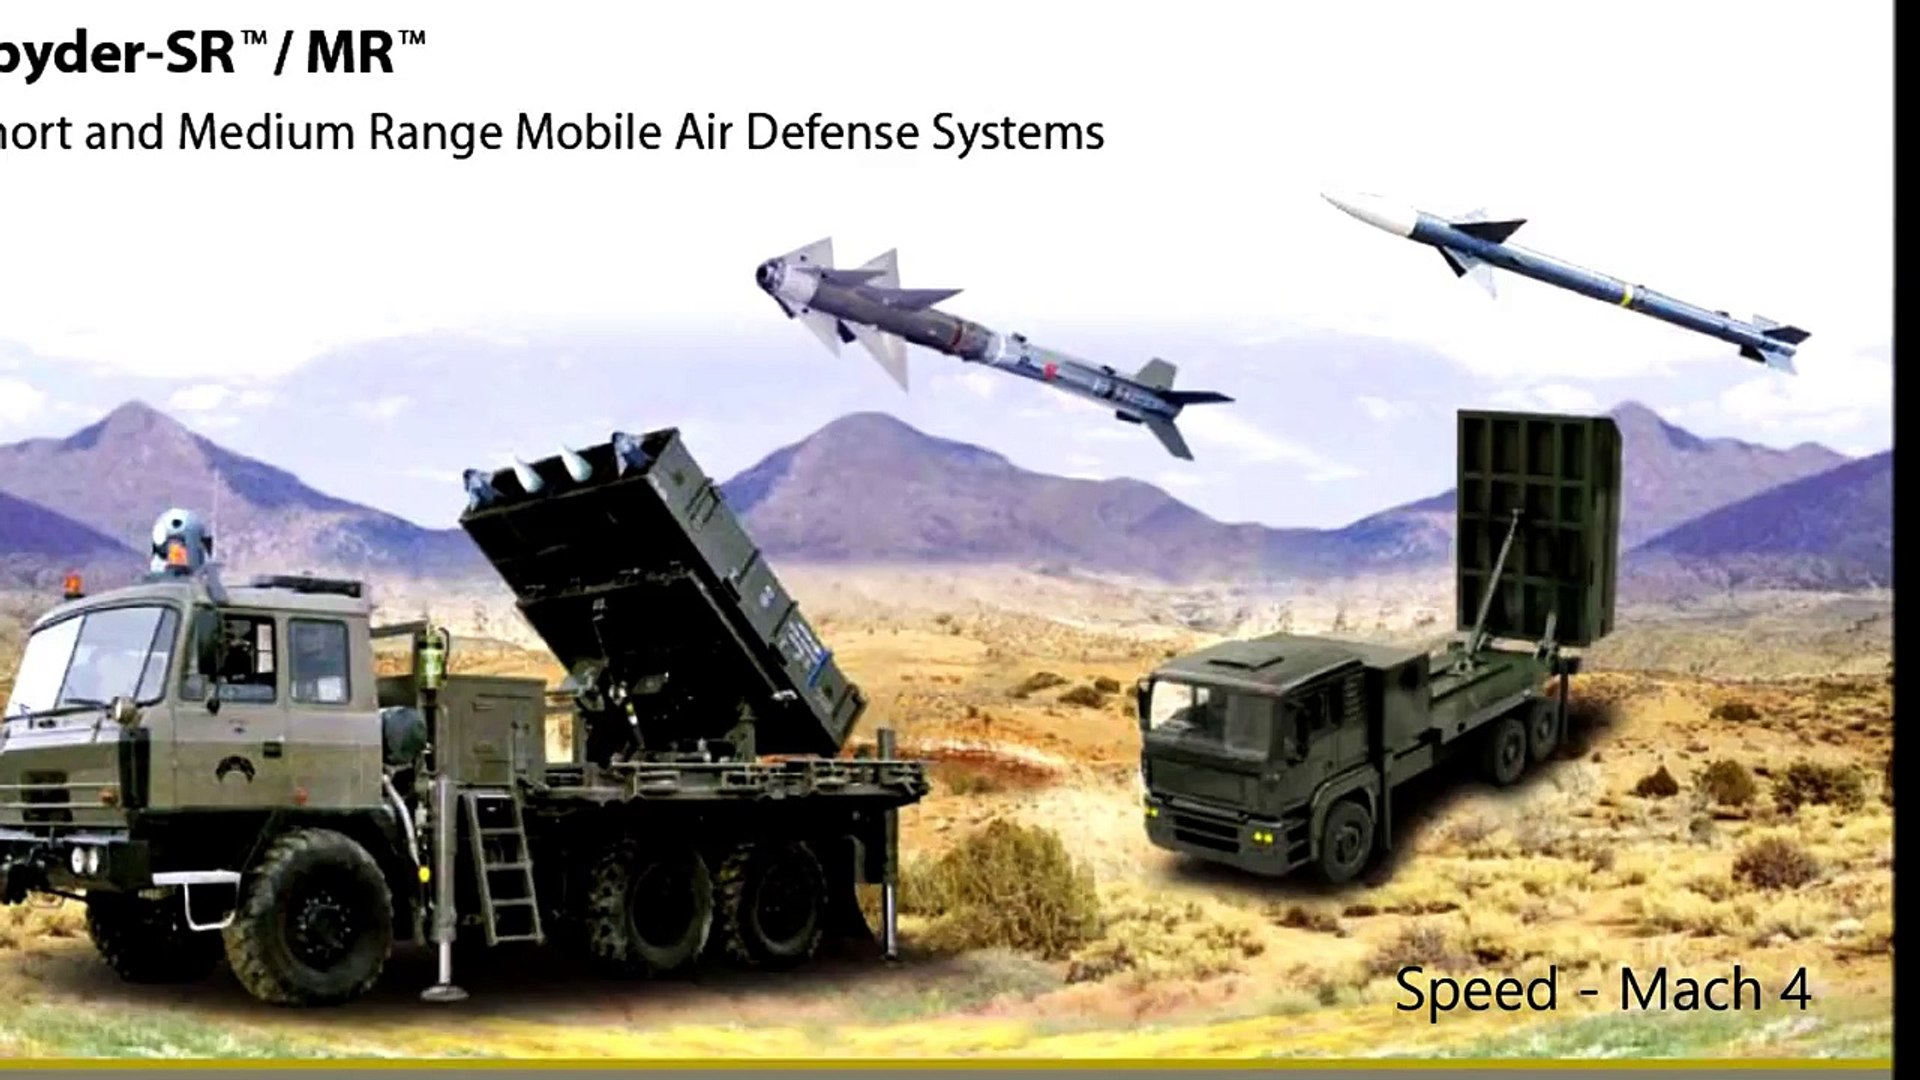 Future Military Weapons of INDIA by 2020 - Top 10 list - Future INDIA 2020 and future weapons